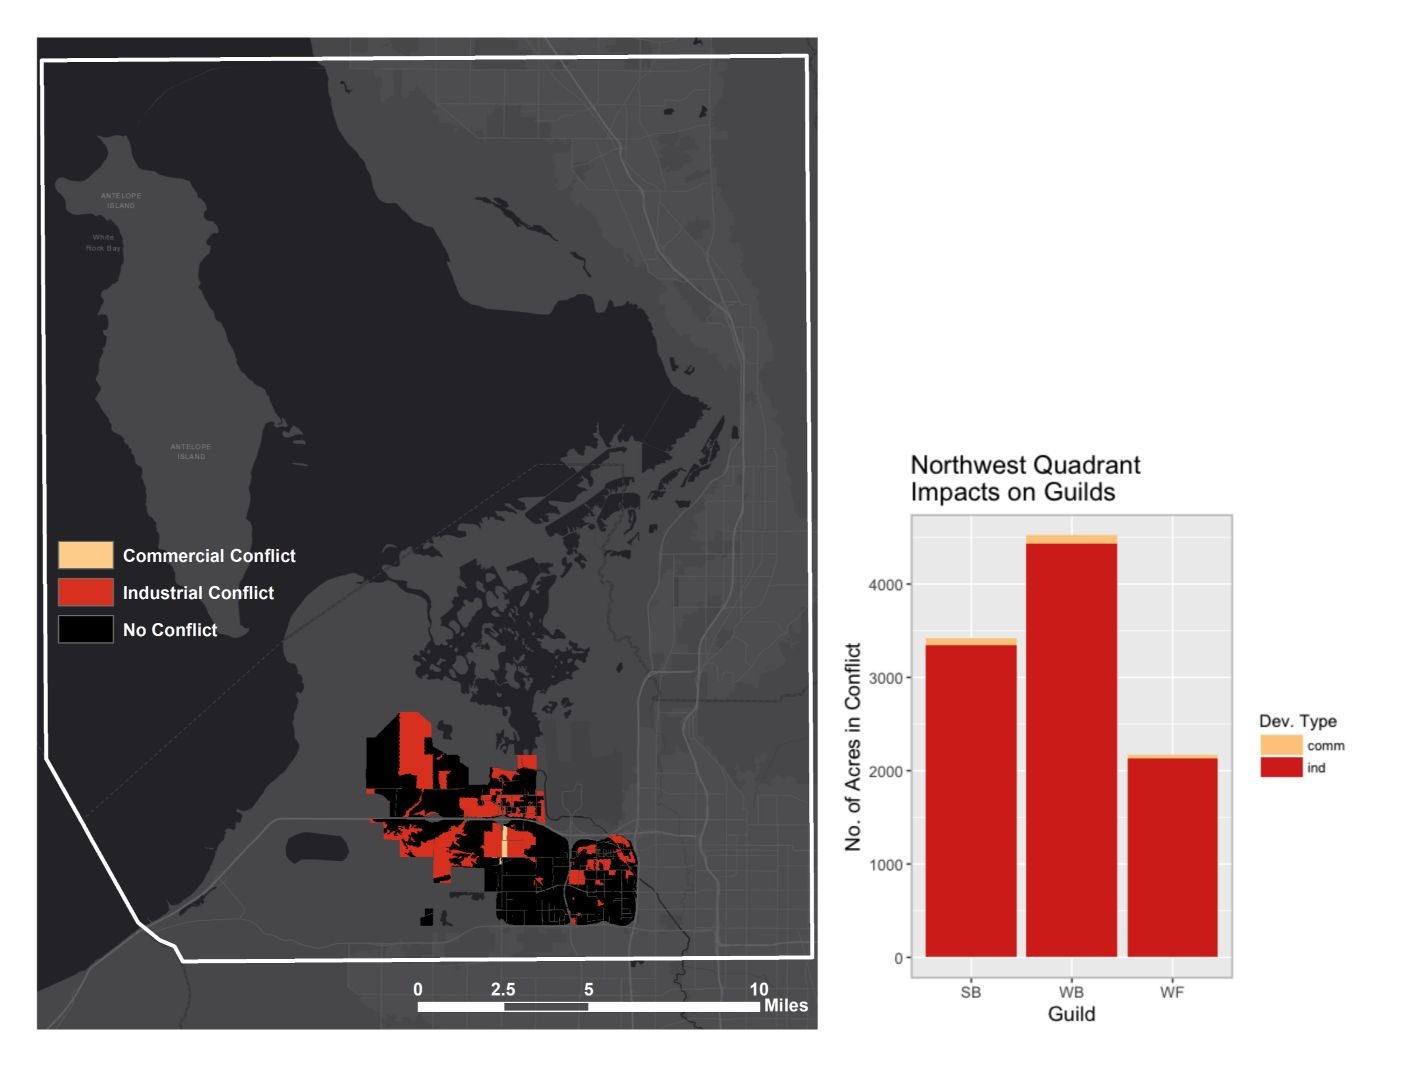 Figure 6: The red and beige areas on the map indicate conflict with bird habitat – 30% of this project's footprint is in conflict. This project is both industrial (red) and commercial (beige) in nature. Industrial development is by far the more disruptive development type for this project. The graph depicts the number of acres of conflict with each bird guild per development type. Waterbirds are the most impacted, followed by shorebirds and then waterfowl. Map and graph created by Aubin Douglas using data from the GIS Department of Salt Lake City and USGS GAP data.